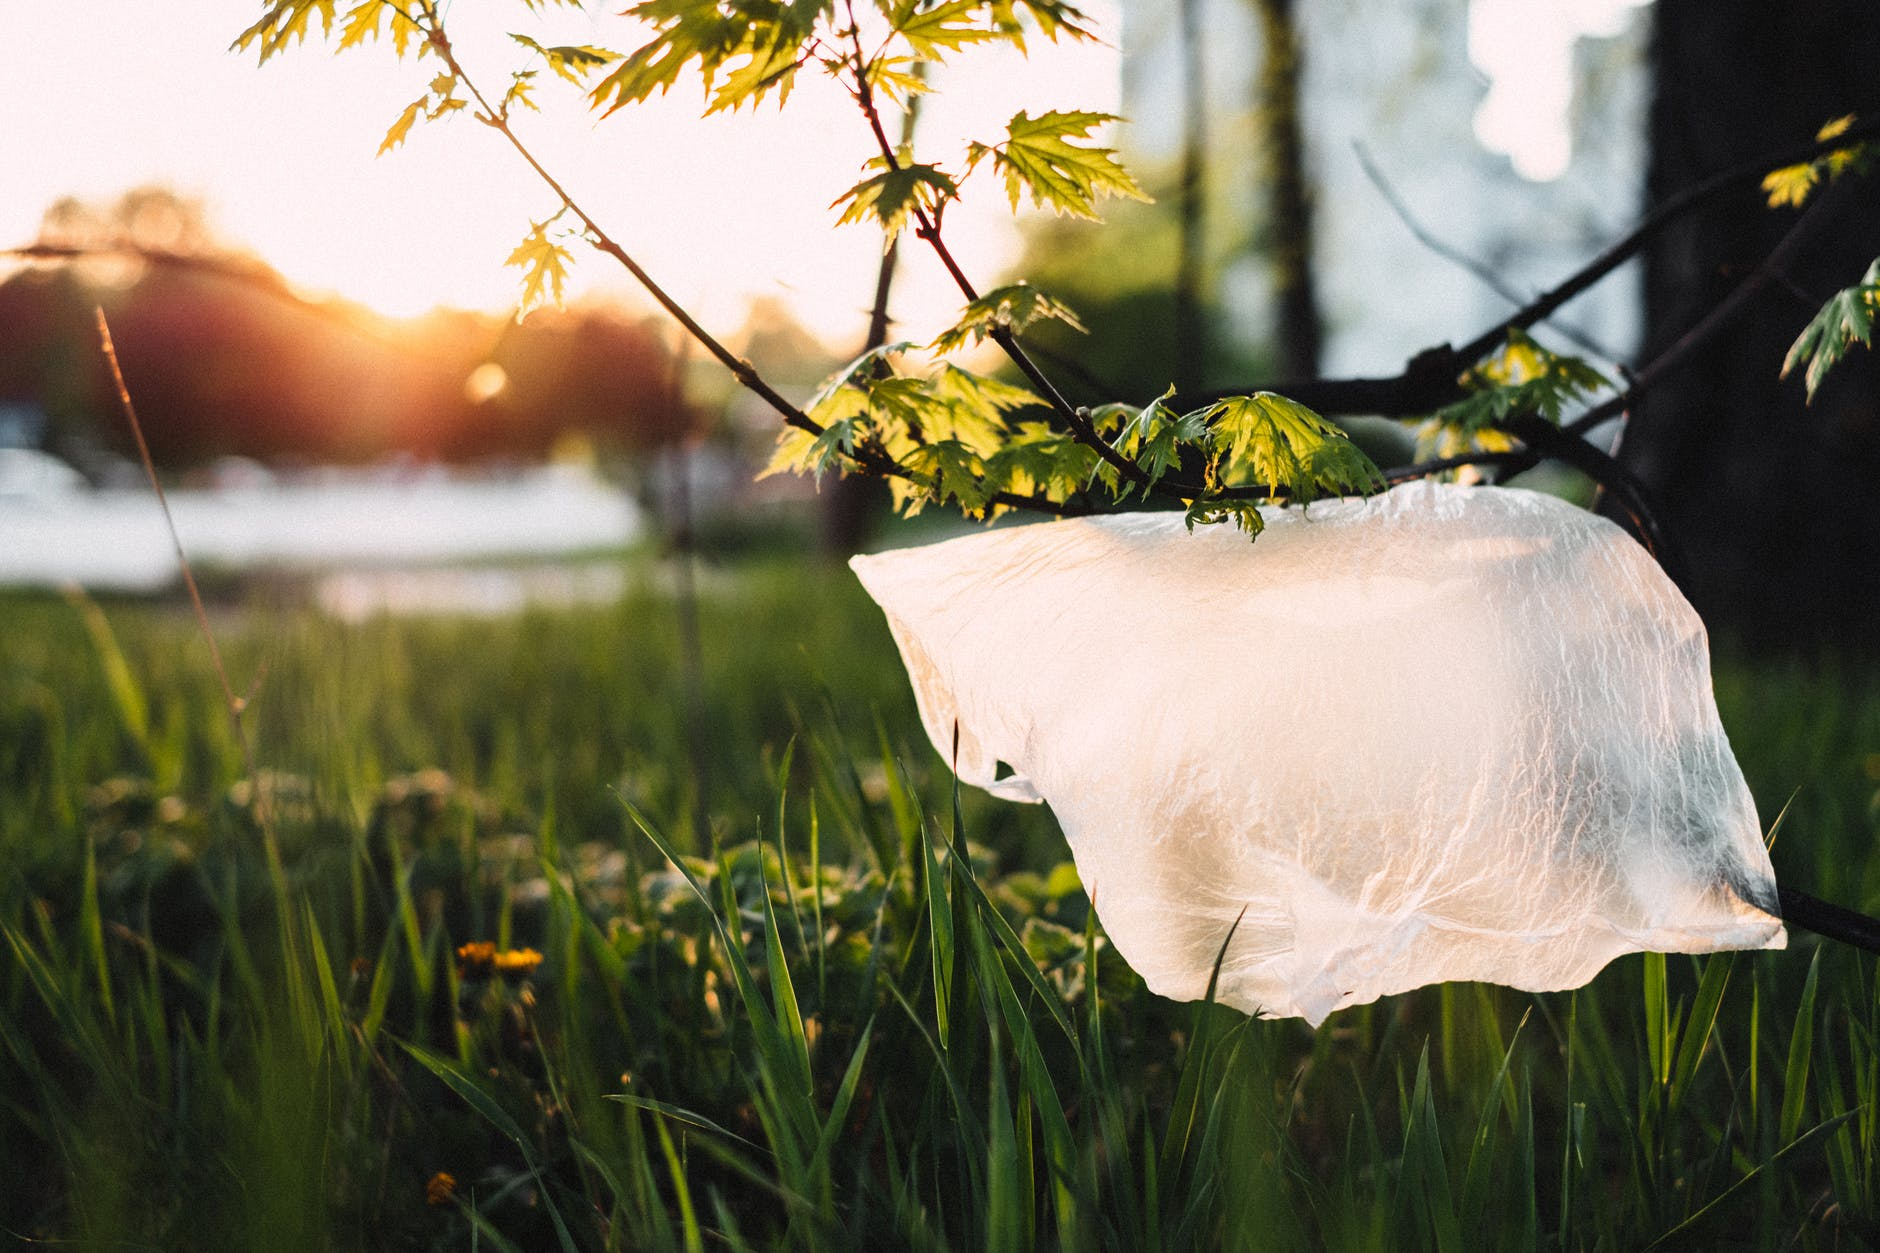 A plastic bag hanging by the twig of the tree over grass.